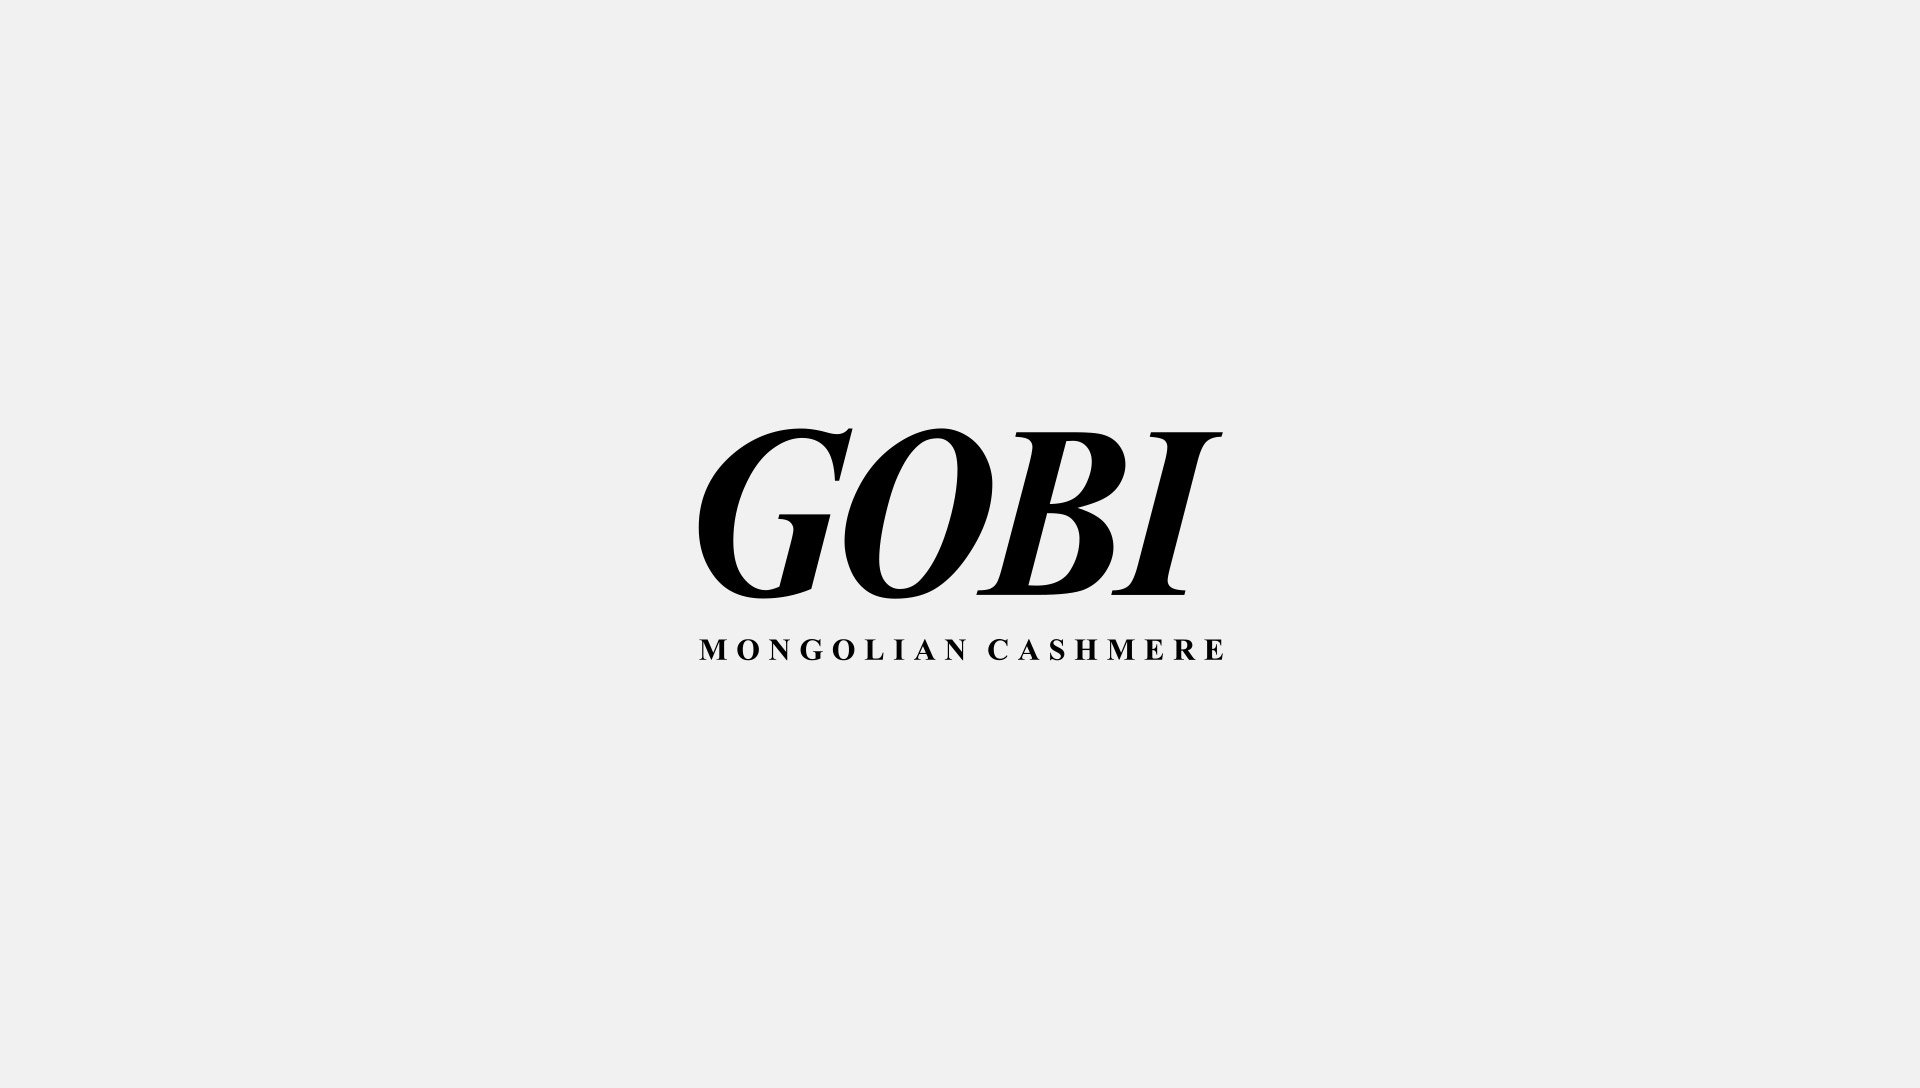 GOBI Cashmere - Gifts for new season: For orders over 199€ get a gift of your choice /socks, hats and scarves